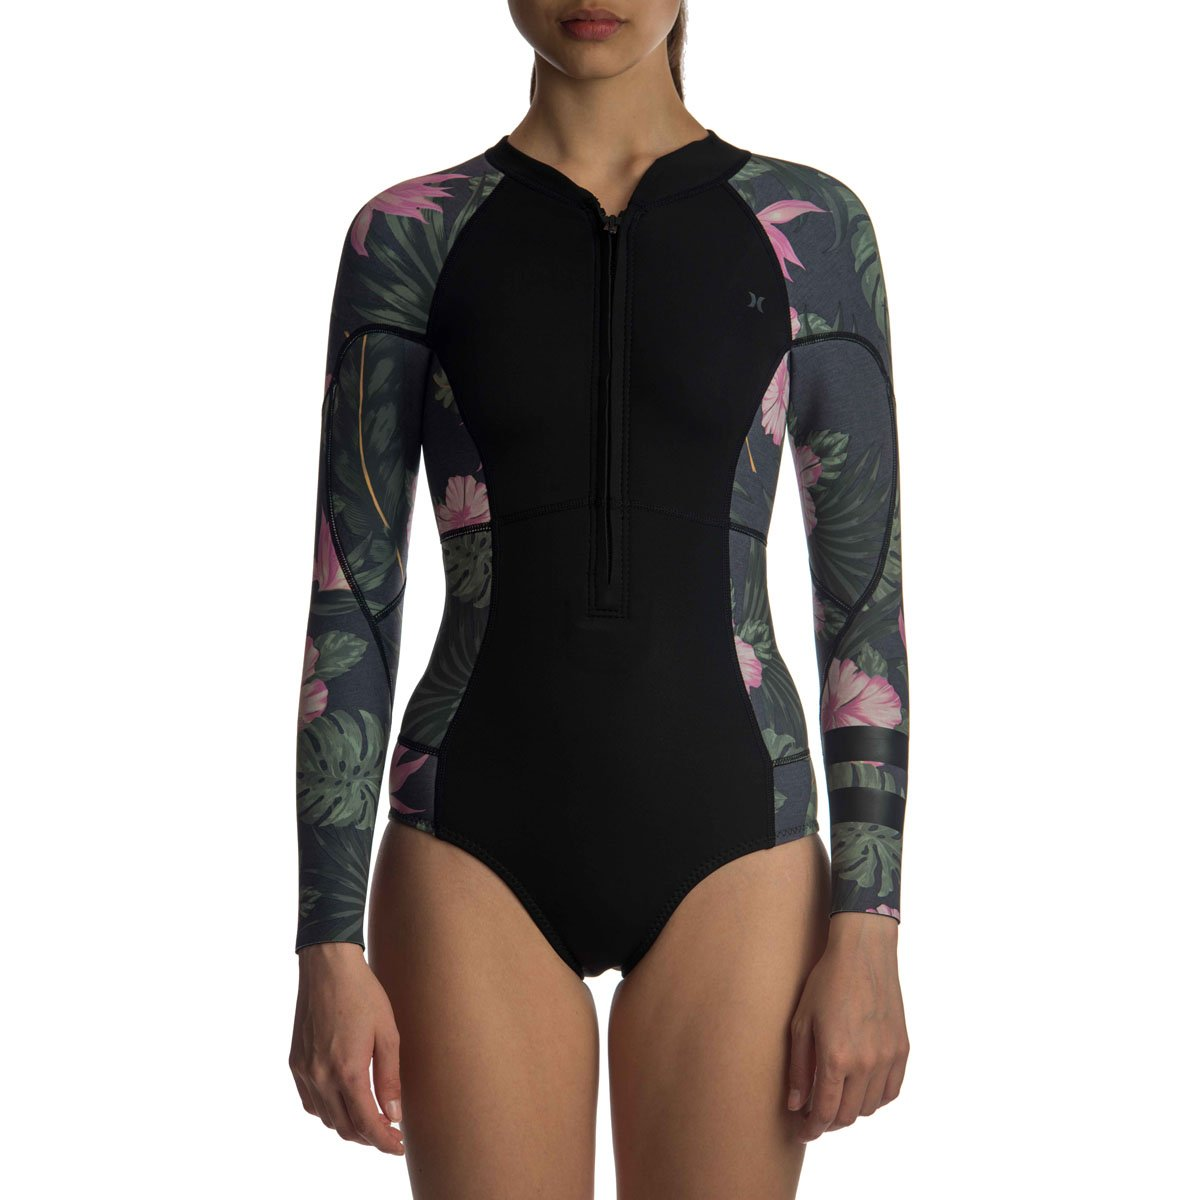 ADVANTAGE PLUS 2MM SPRINGSUIT